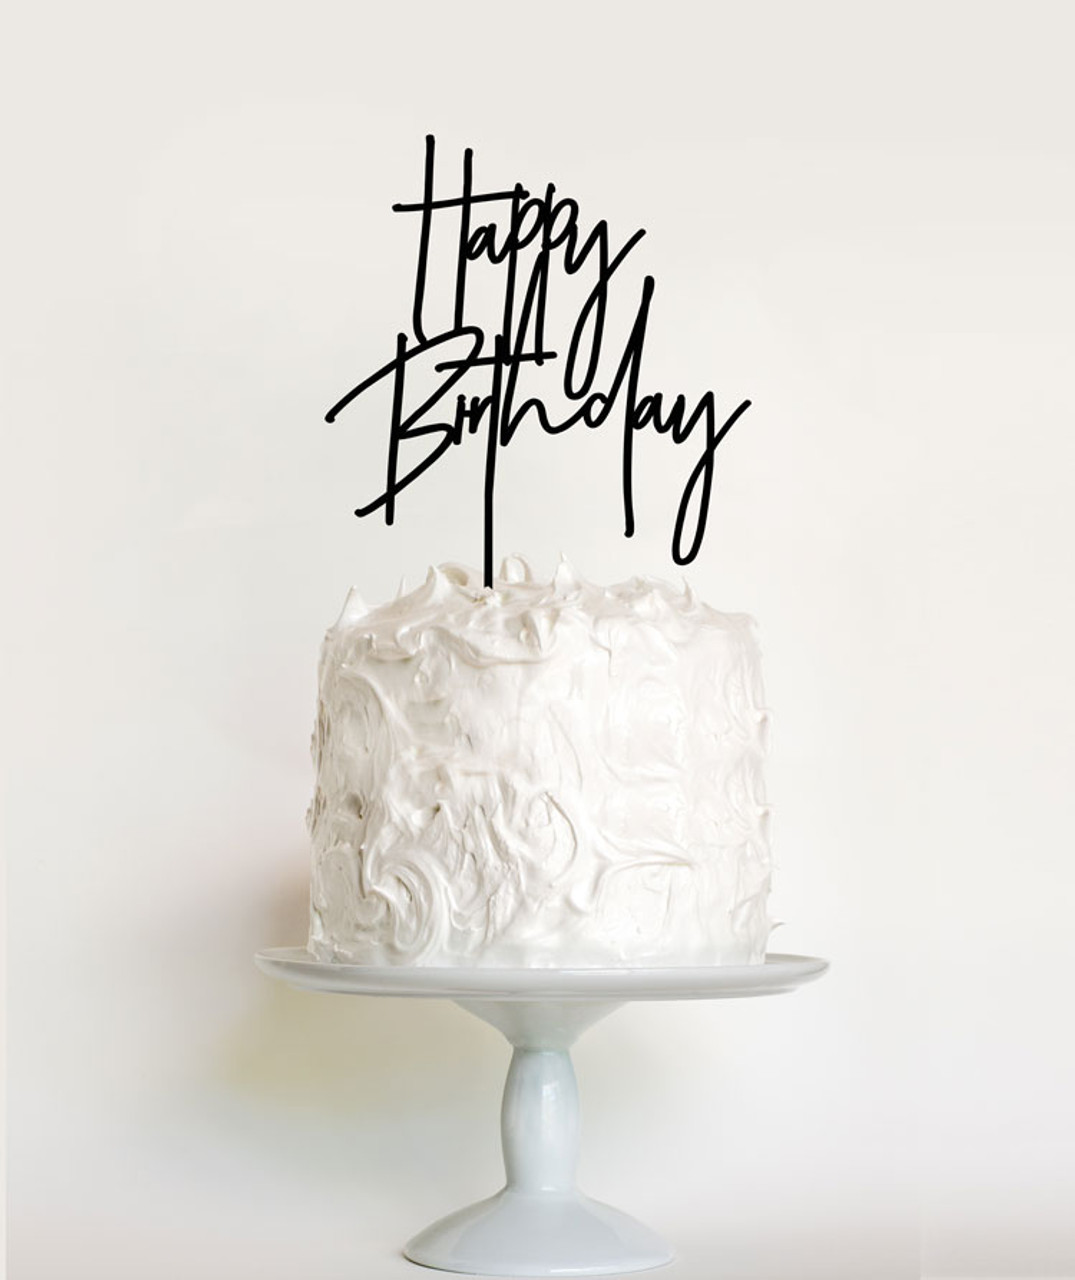 Happy Birthday Cake Topper Cake Decoration Featuring The Words Happy Birthday